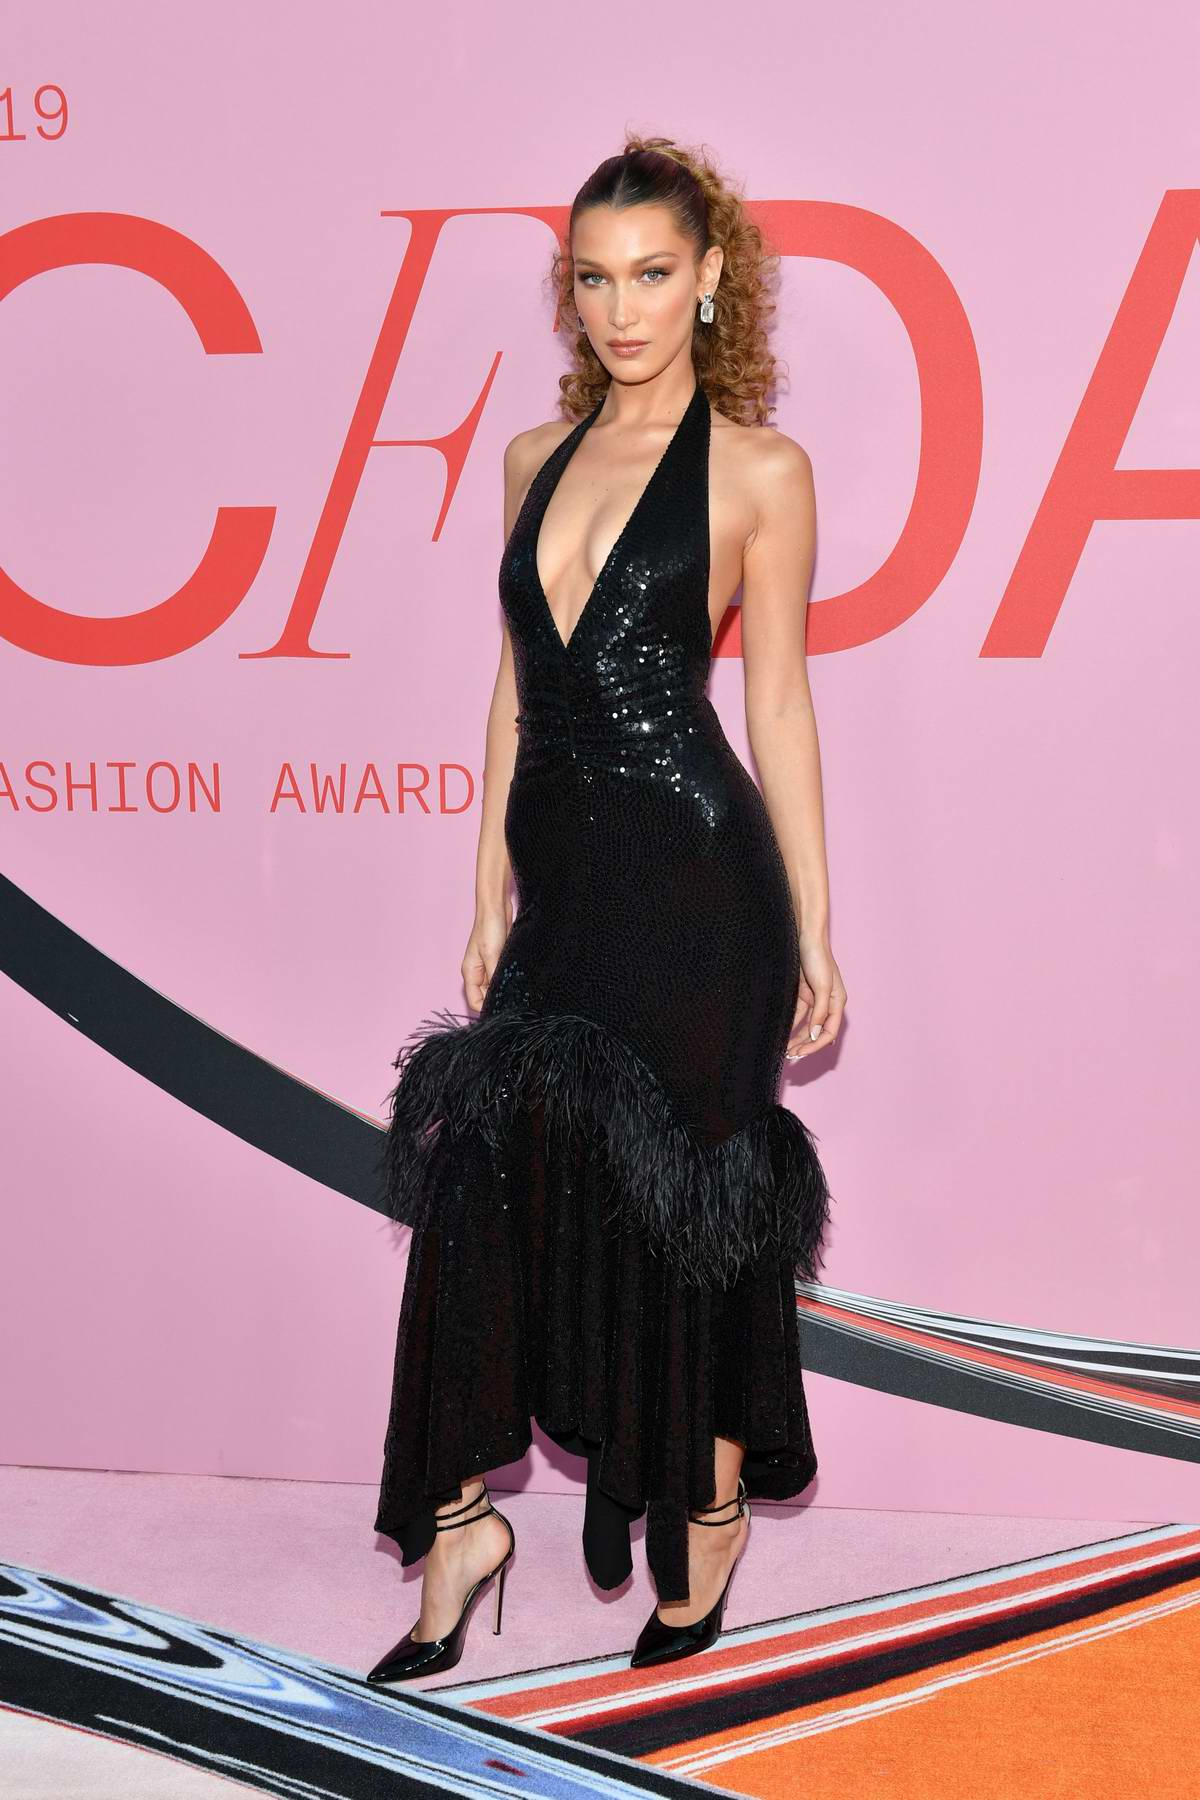 Bella Hadid attends the 2019 CFDA Fashion Awards at Brooklyn Museum in New York City